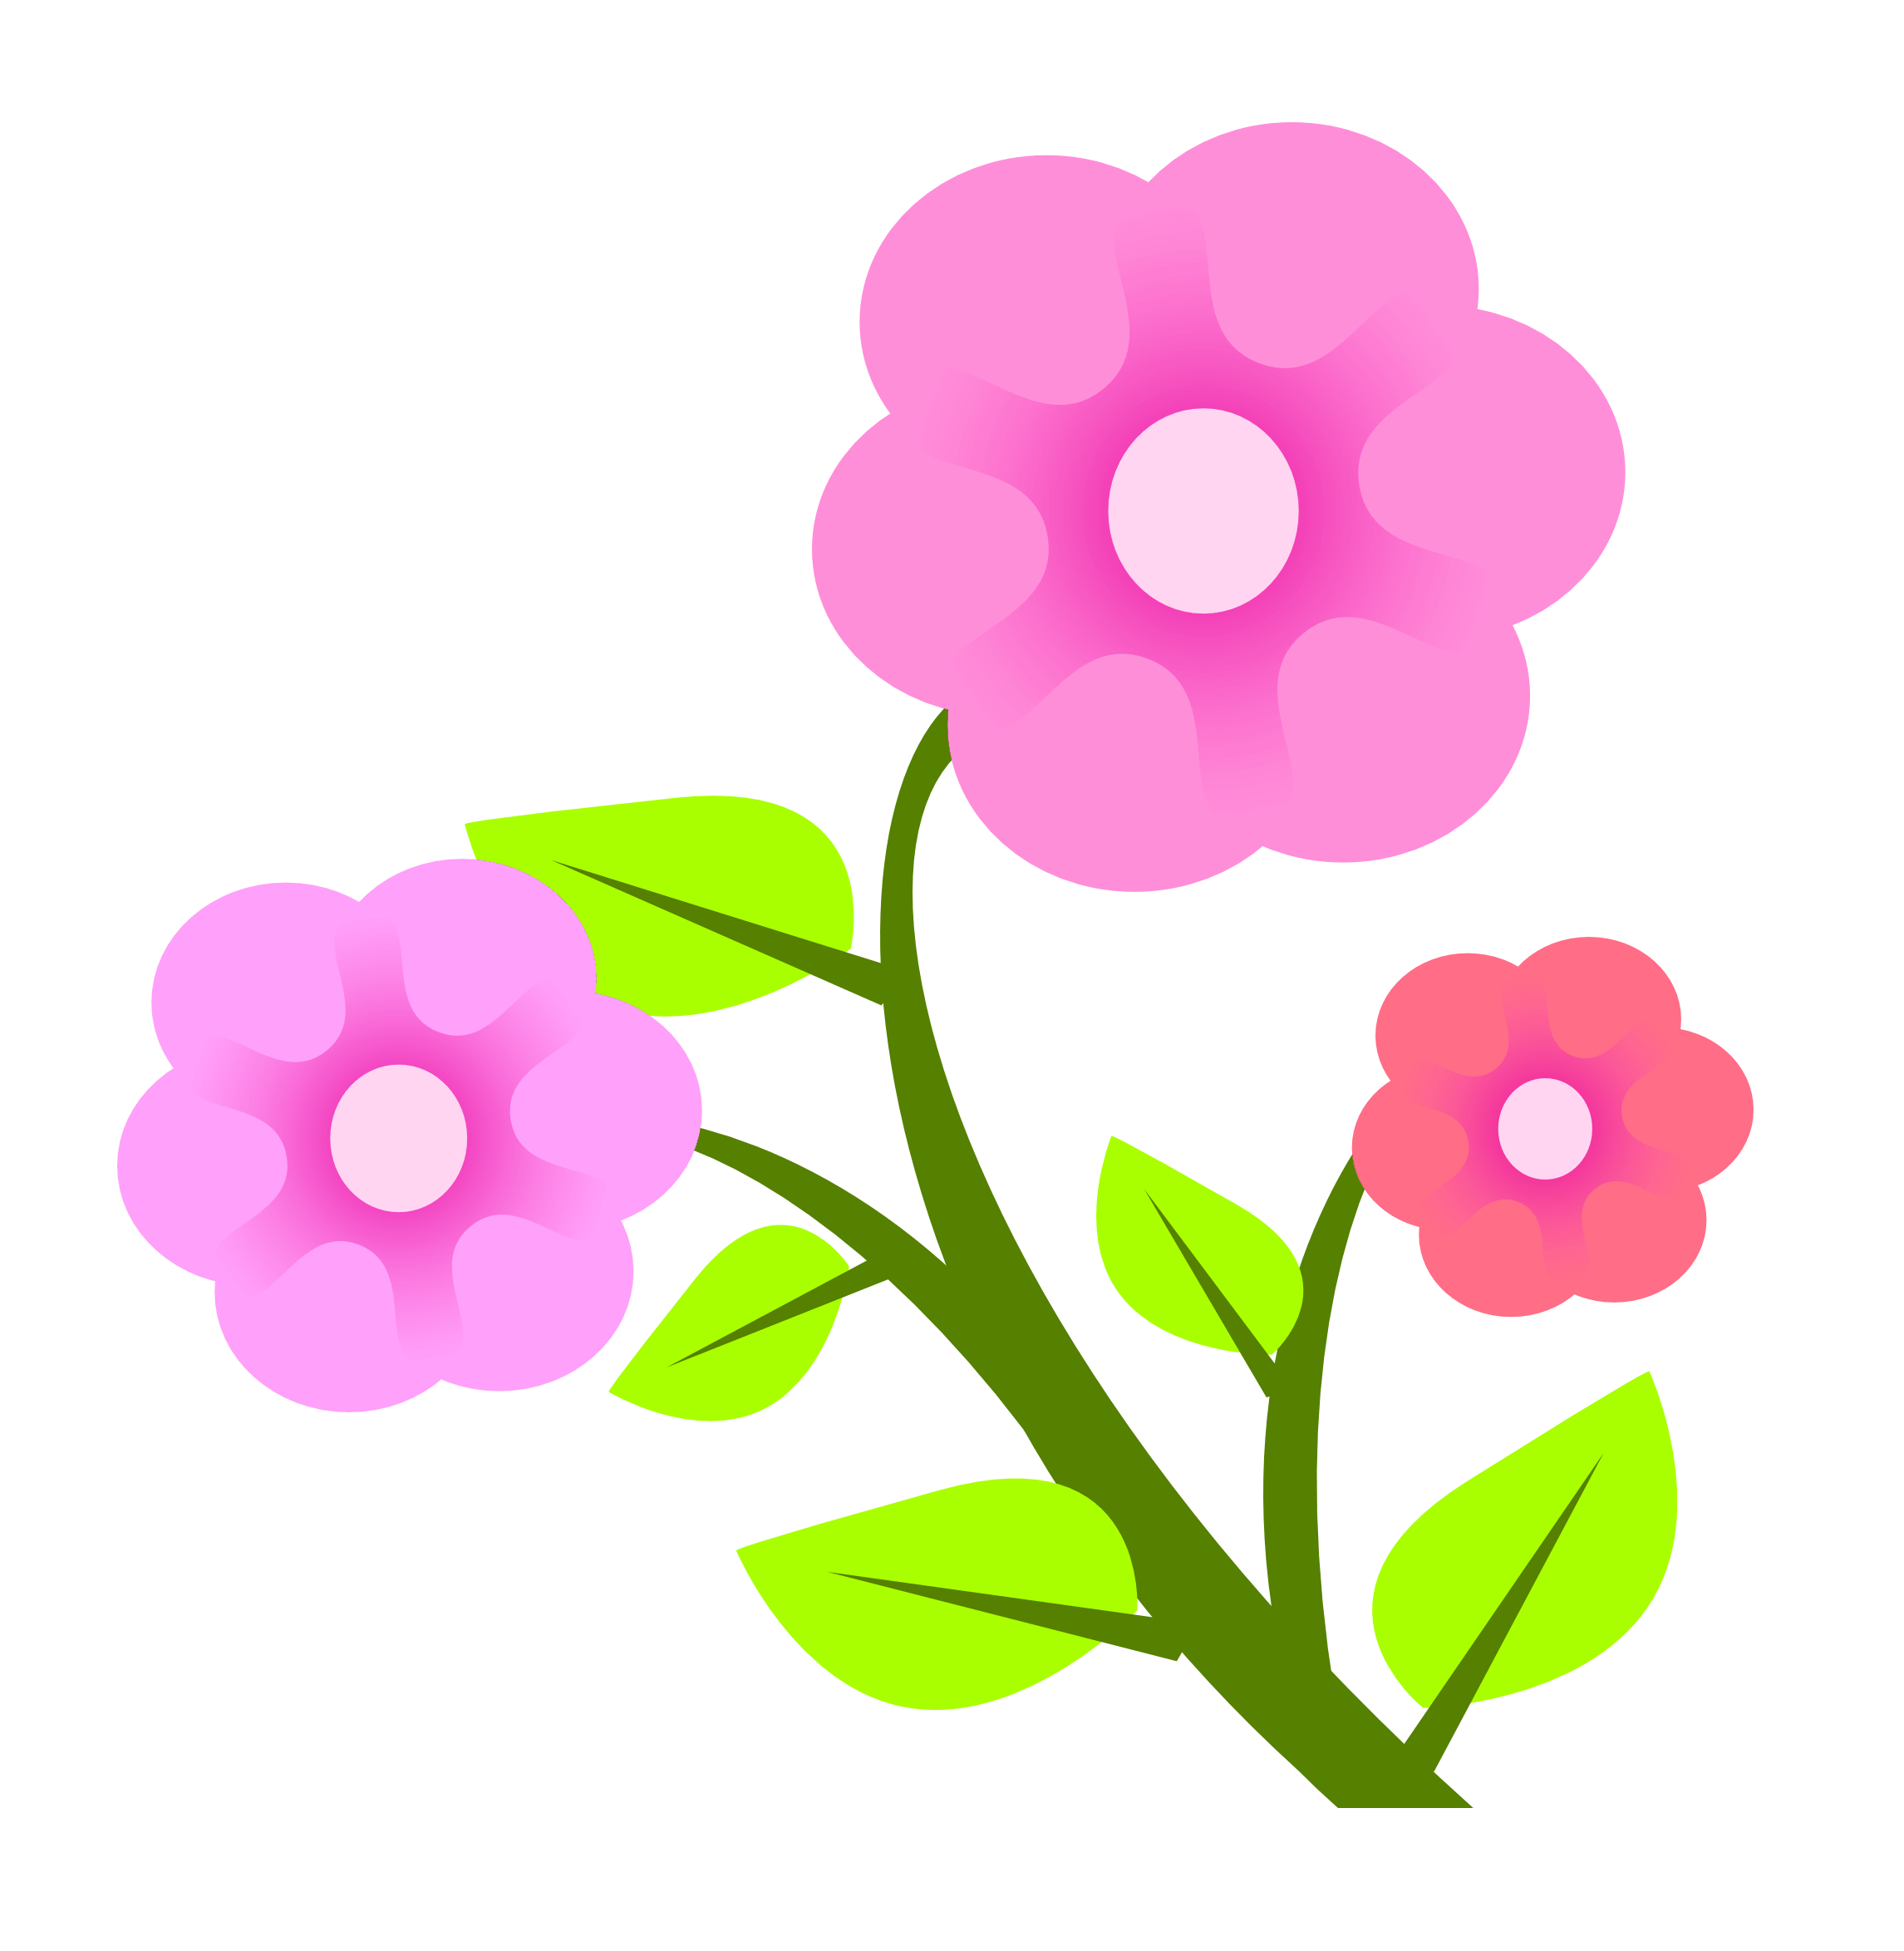 Cute Red Color Wallpaper Flower Vector Png Image Purepng Free Transparent Cc0